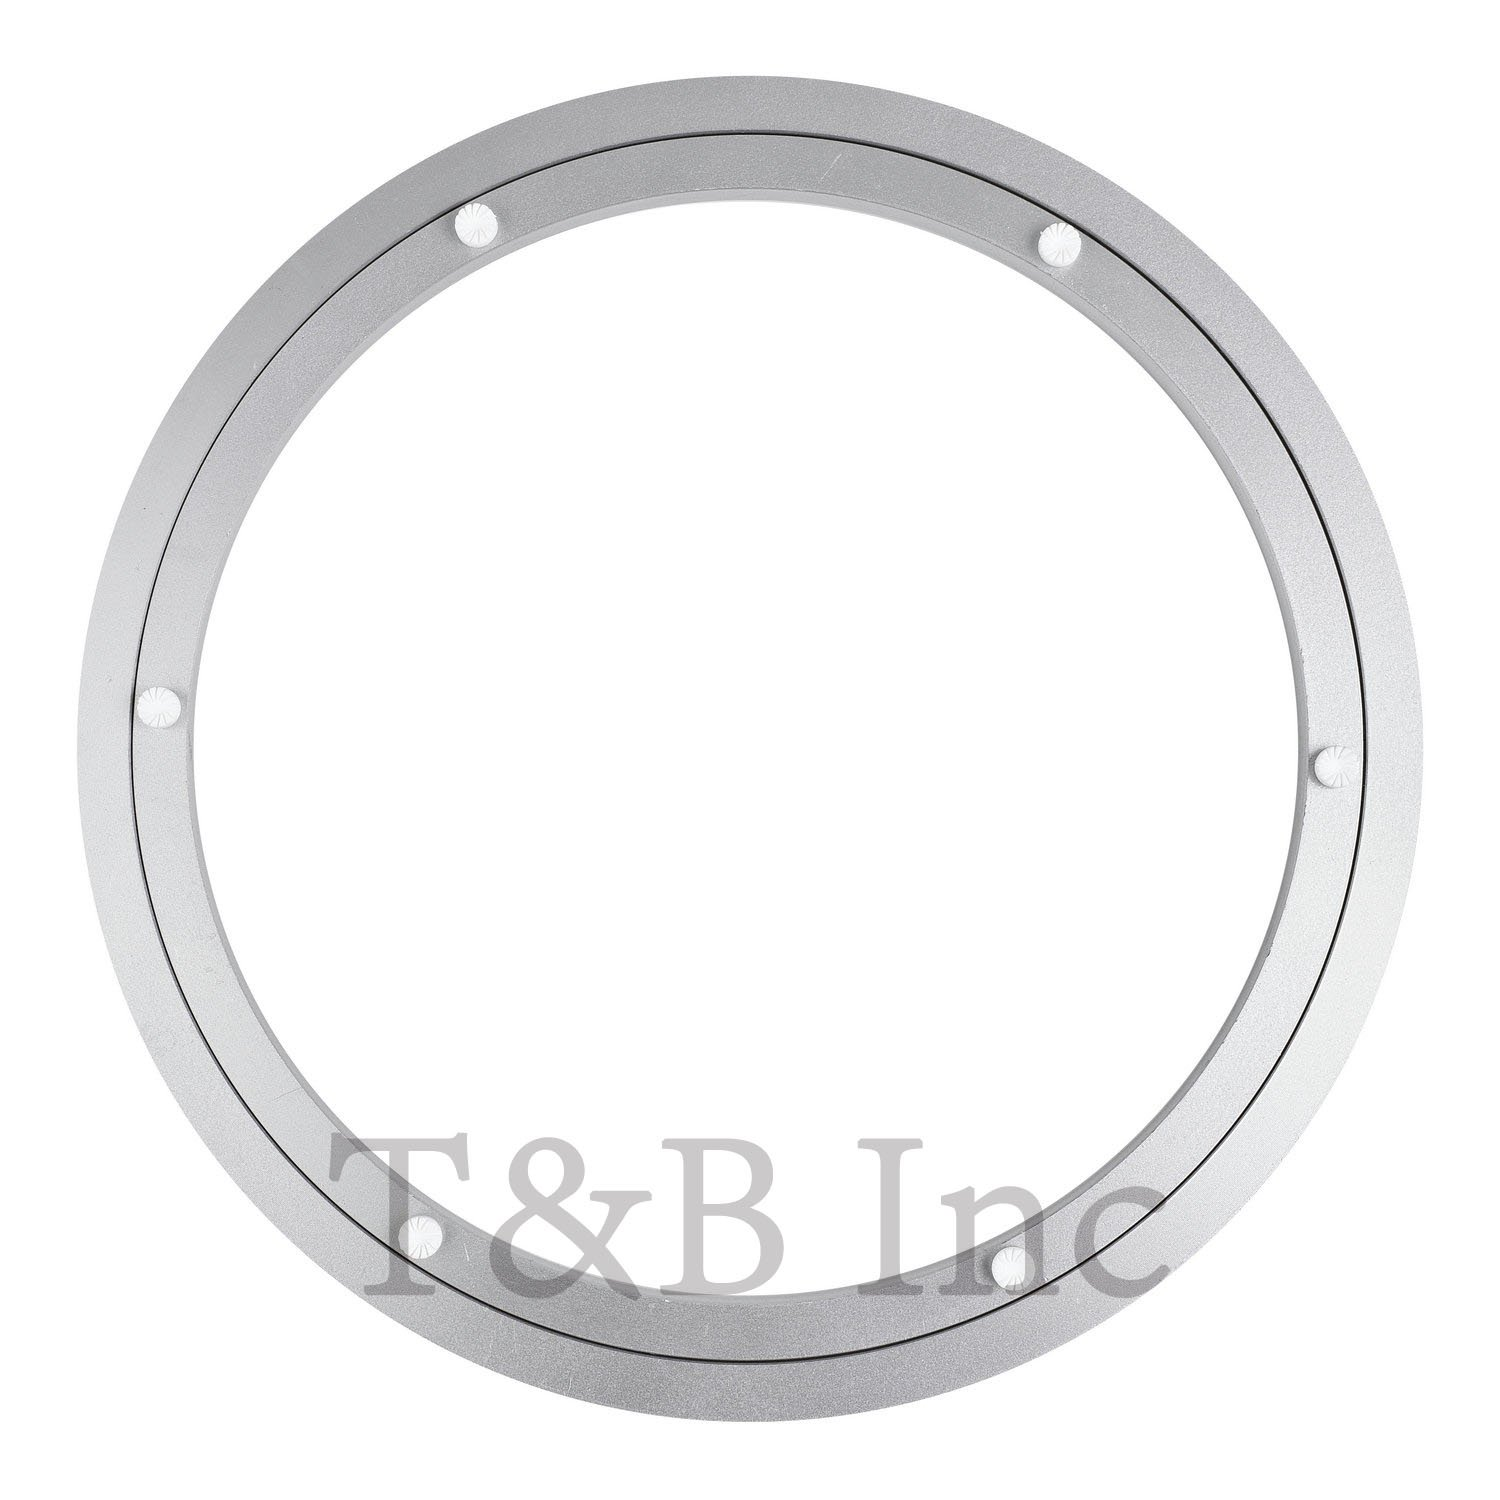 TamBee 350mm Lazy Susan 14 inch Aluminum Bearing Metal Rotating Turntable Bearings Swivel Plate Hardware for Dining-Table